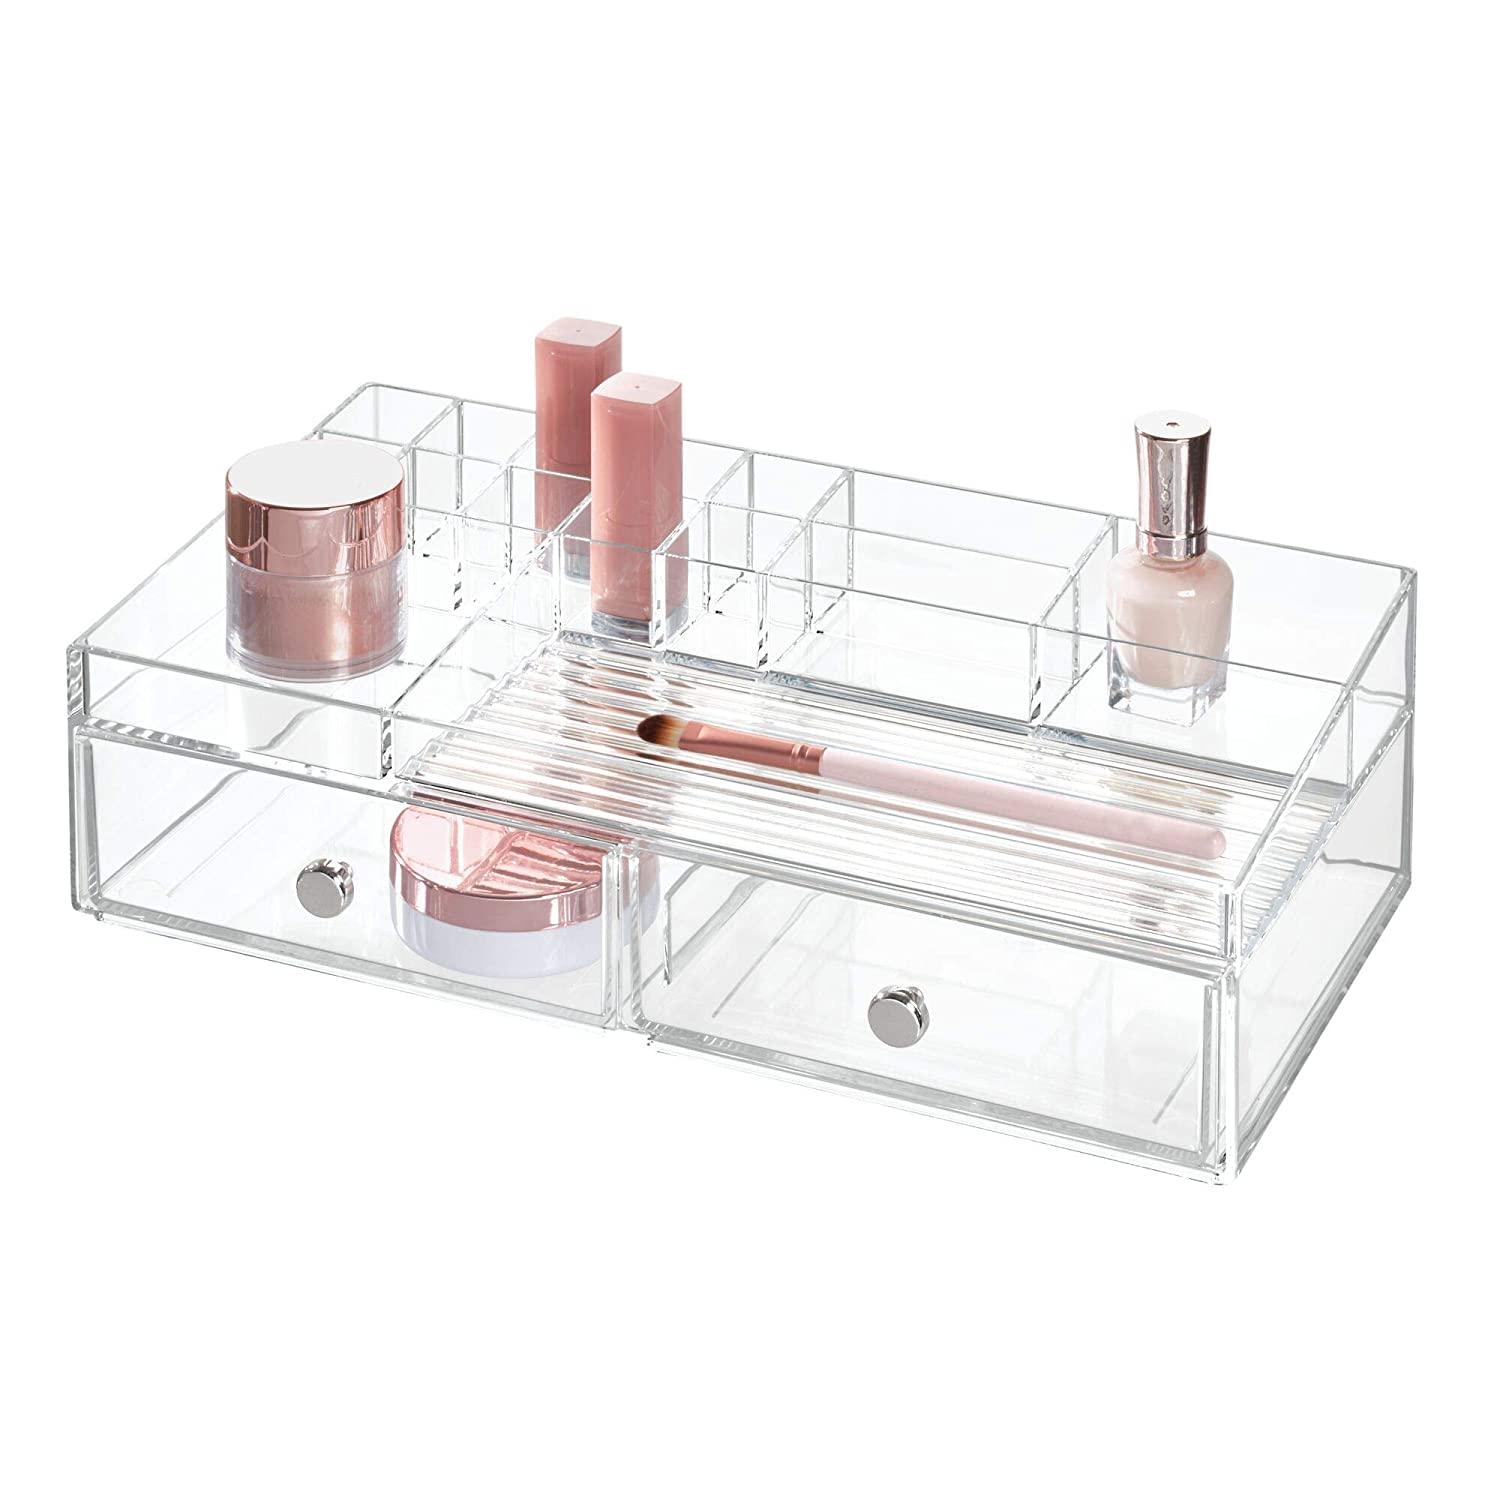 InterDesign 2 drawer Cosmetic Organizer for Vanity Cabinet To Hold Makeup, Beauty Products – Clear